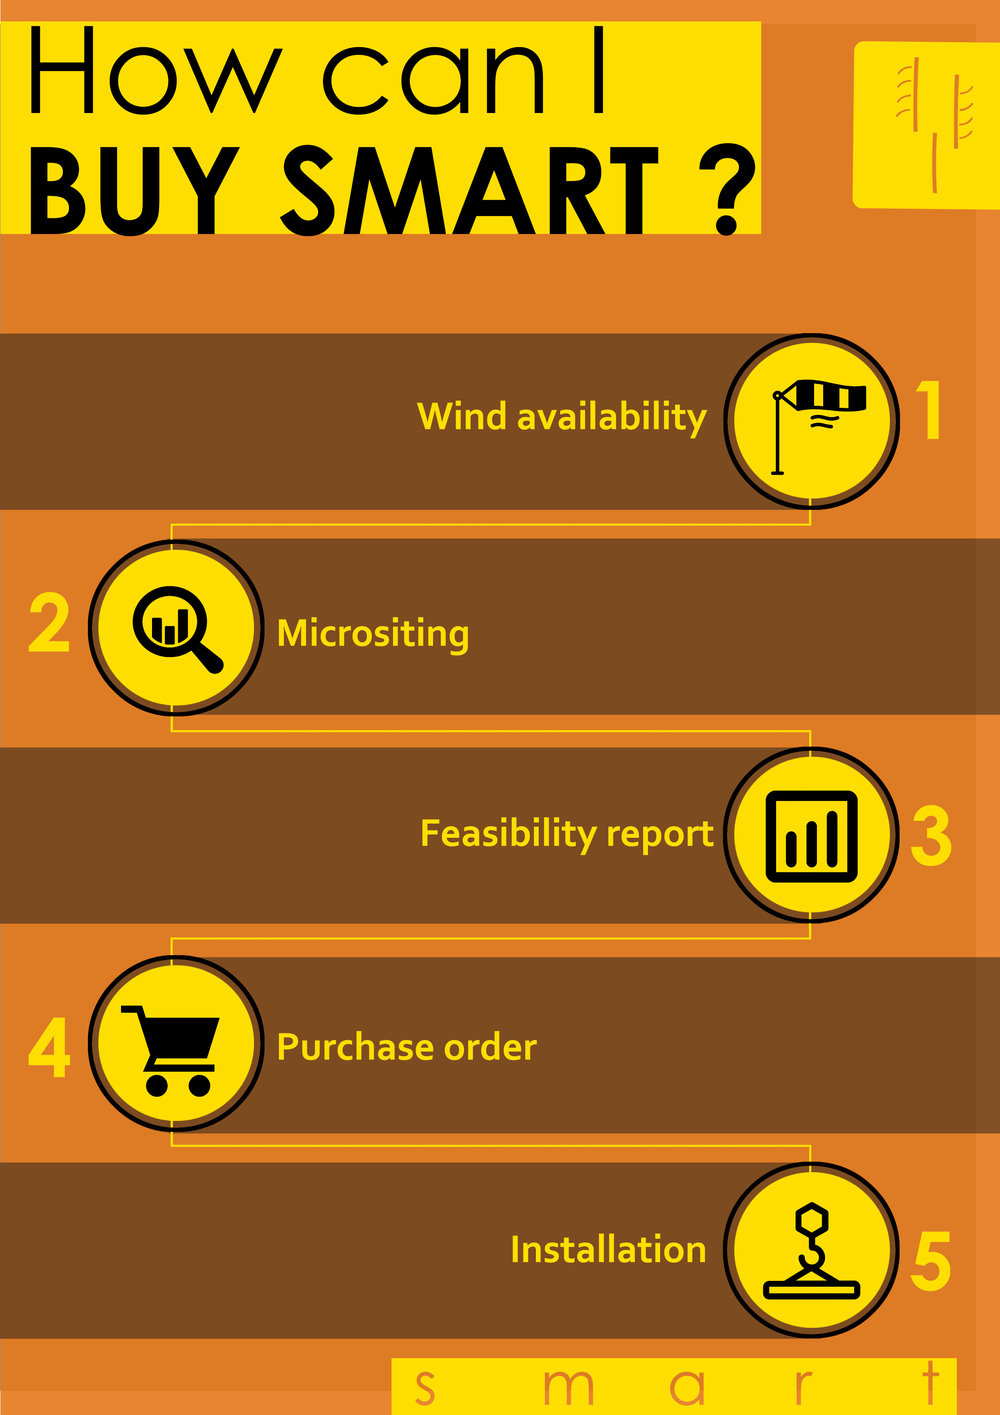 how to buy smart-1.jpg